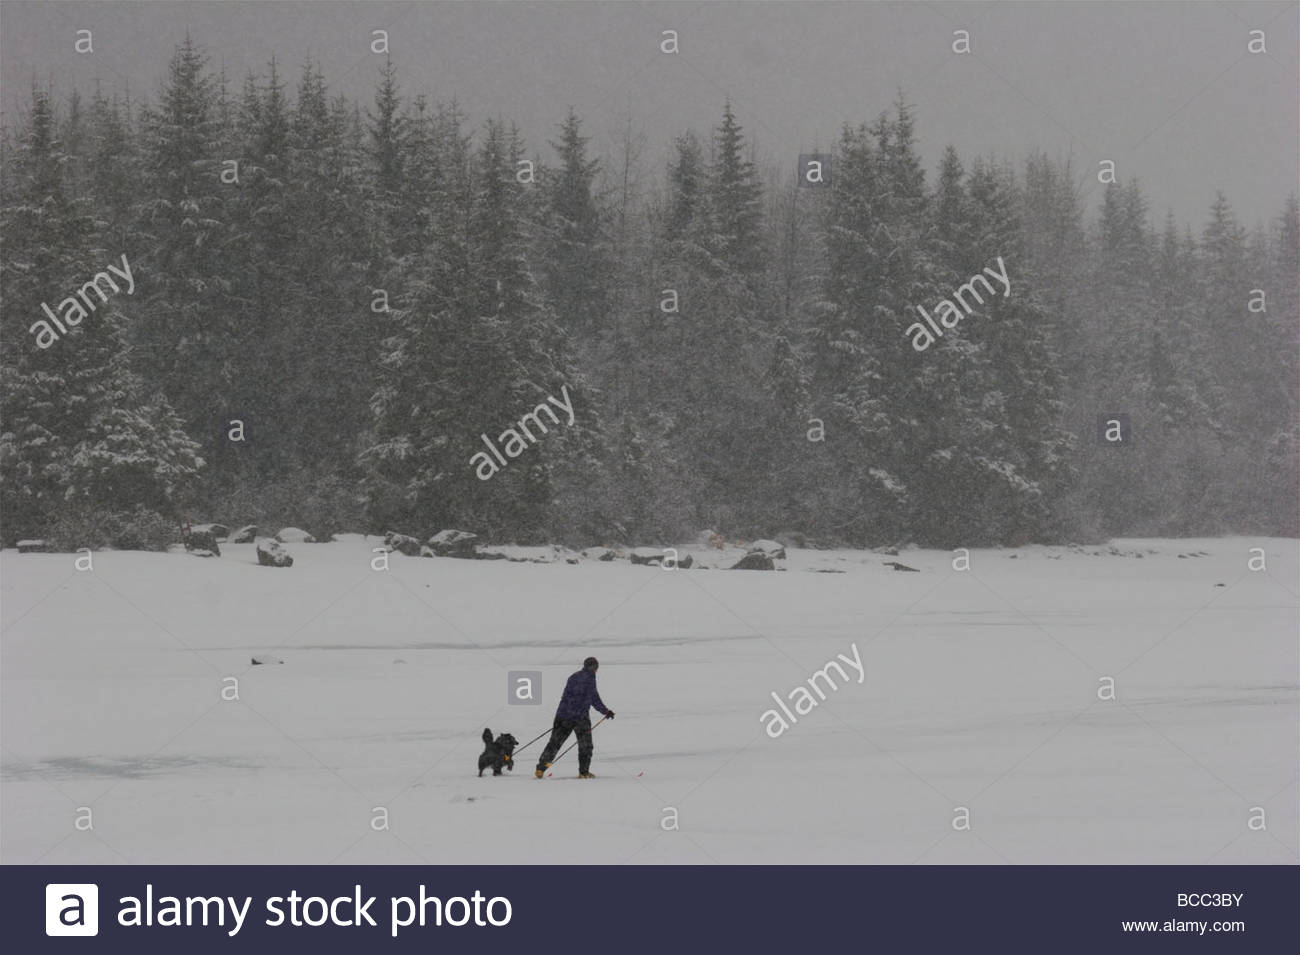 Cross country skiing with a dog on Mendenhall Lake. - Stock Image